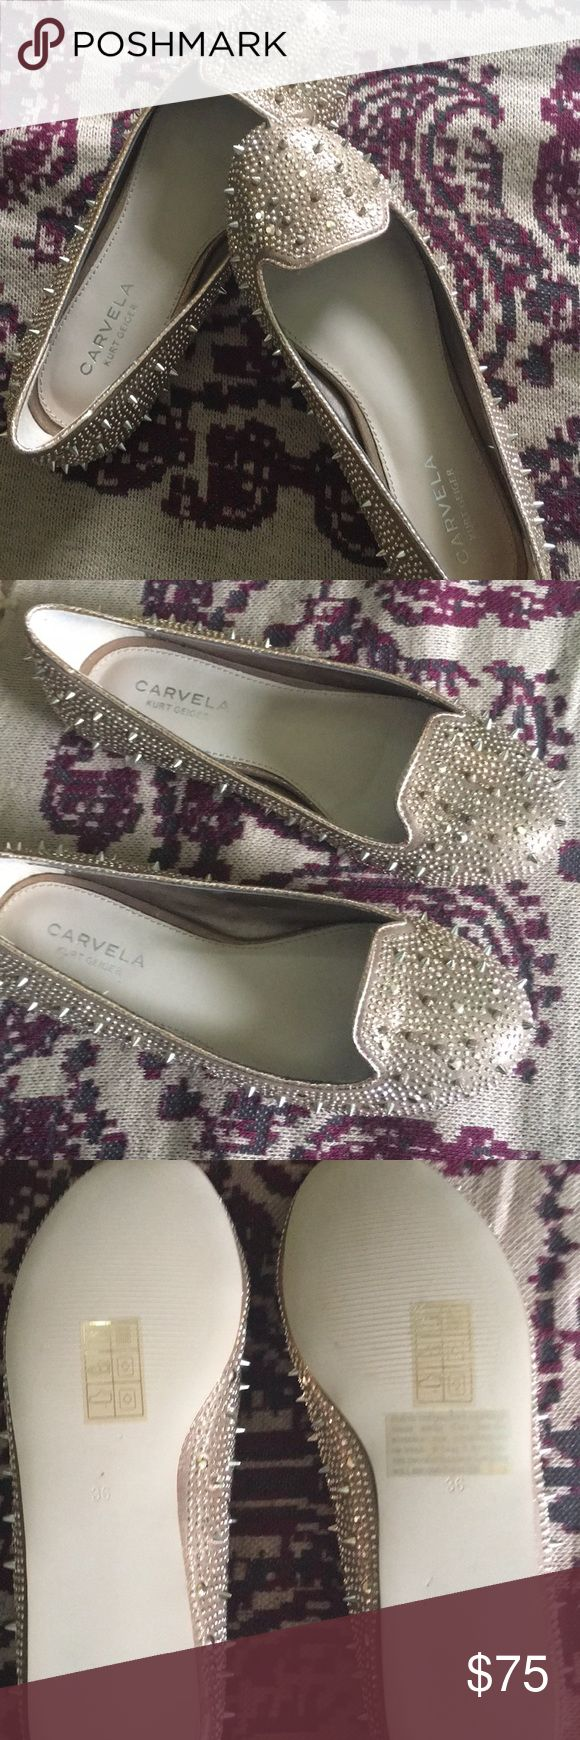 carvela Kurt Geiger metallic spiked loafers NWOT carvela Kurt Geiger metallic spiked loafers - in perfect condition. These were purchased from another Posher but they are a tad too small for me. They are marked sz 36 but would fit a 5.5 better. Open to offers!! kurt geiger Shoes